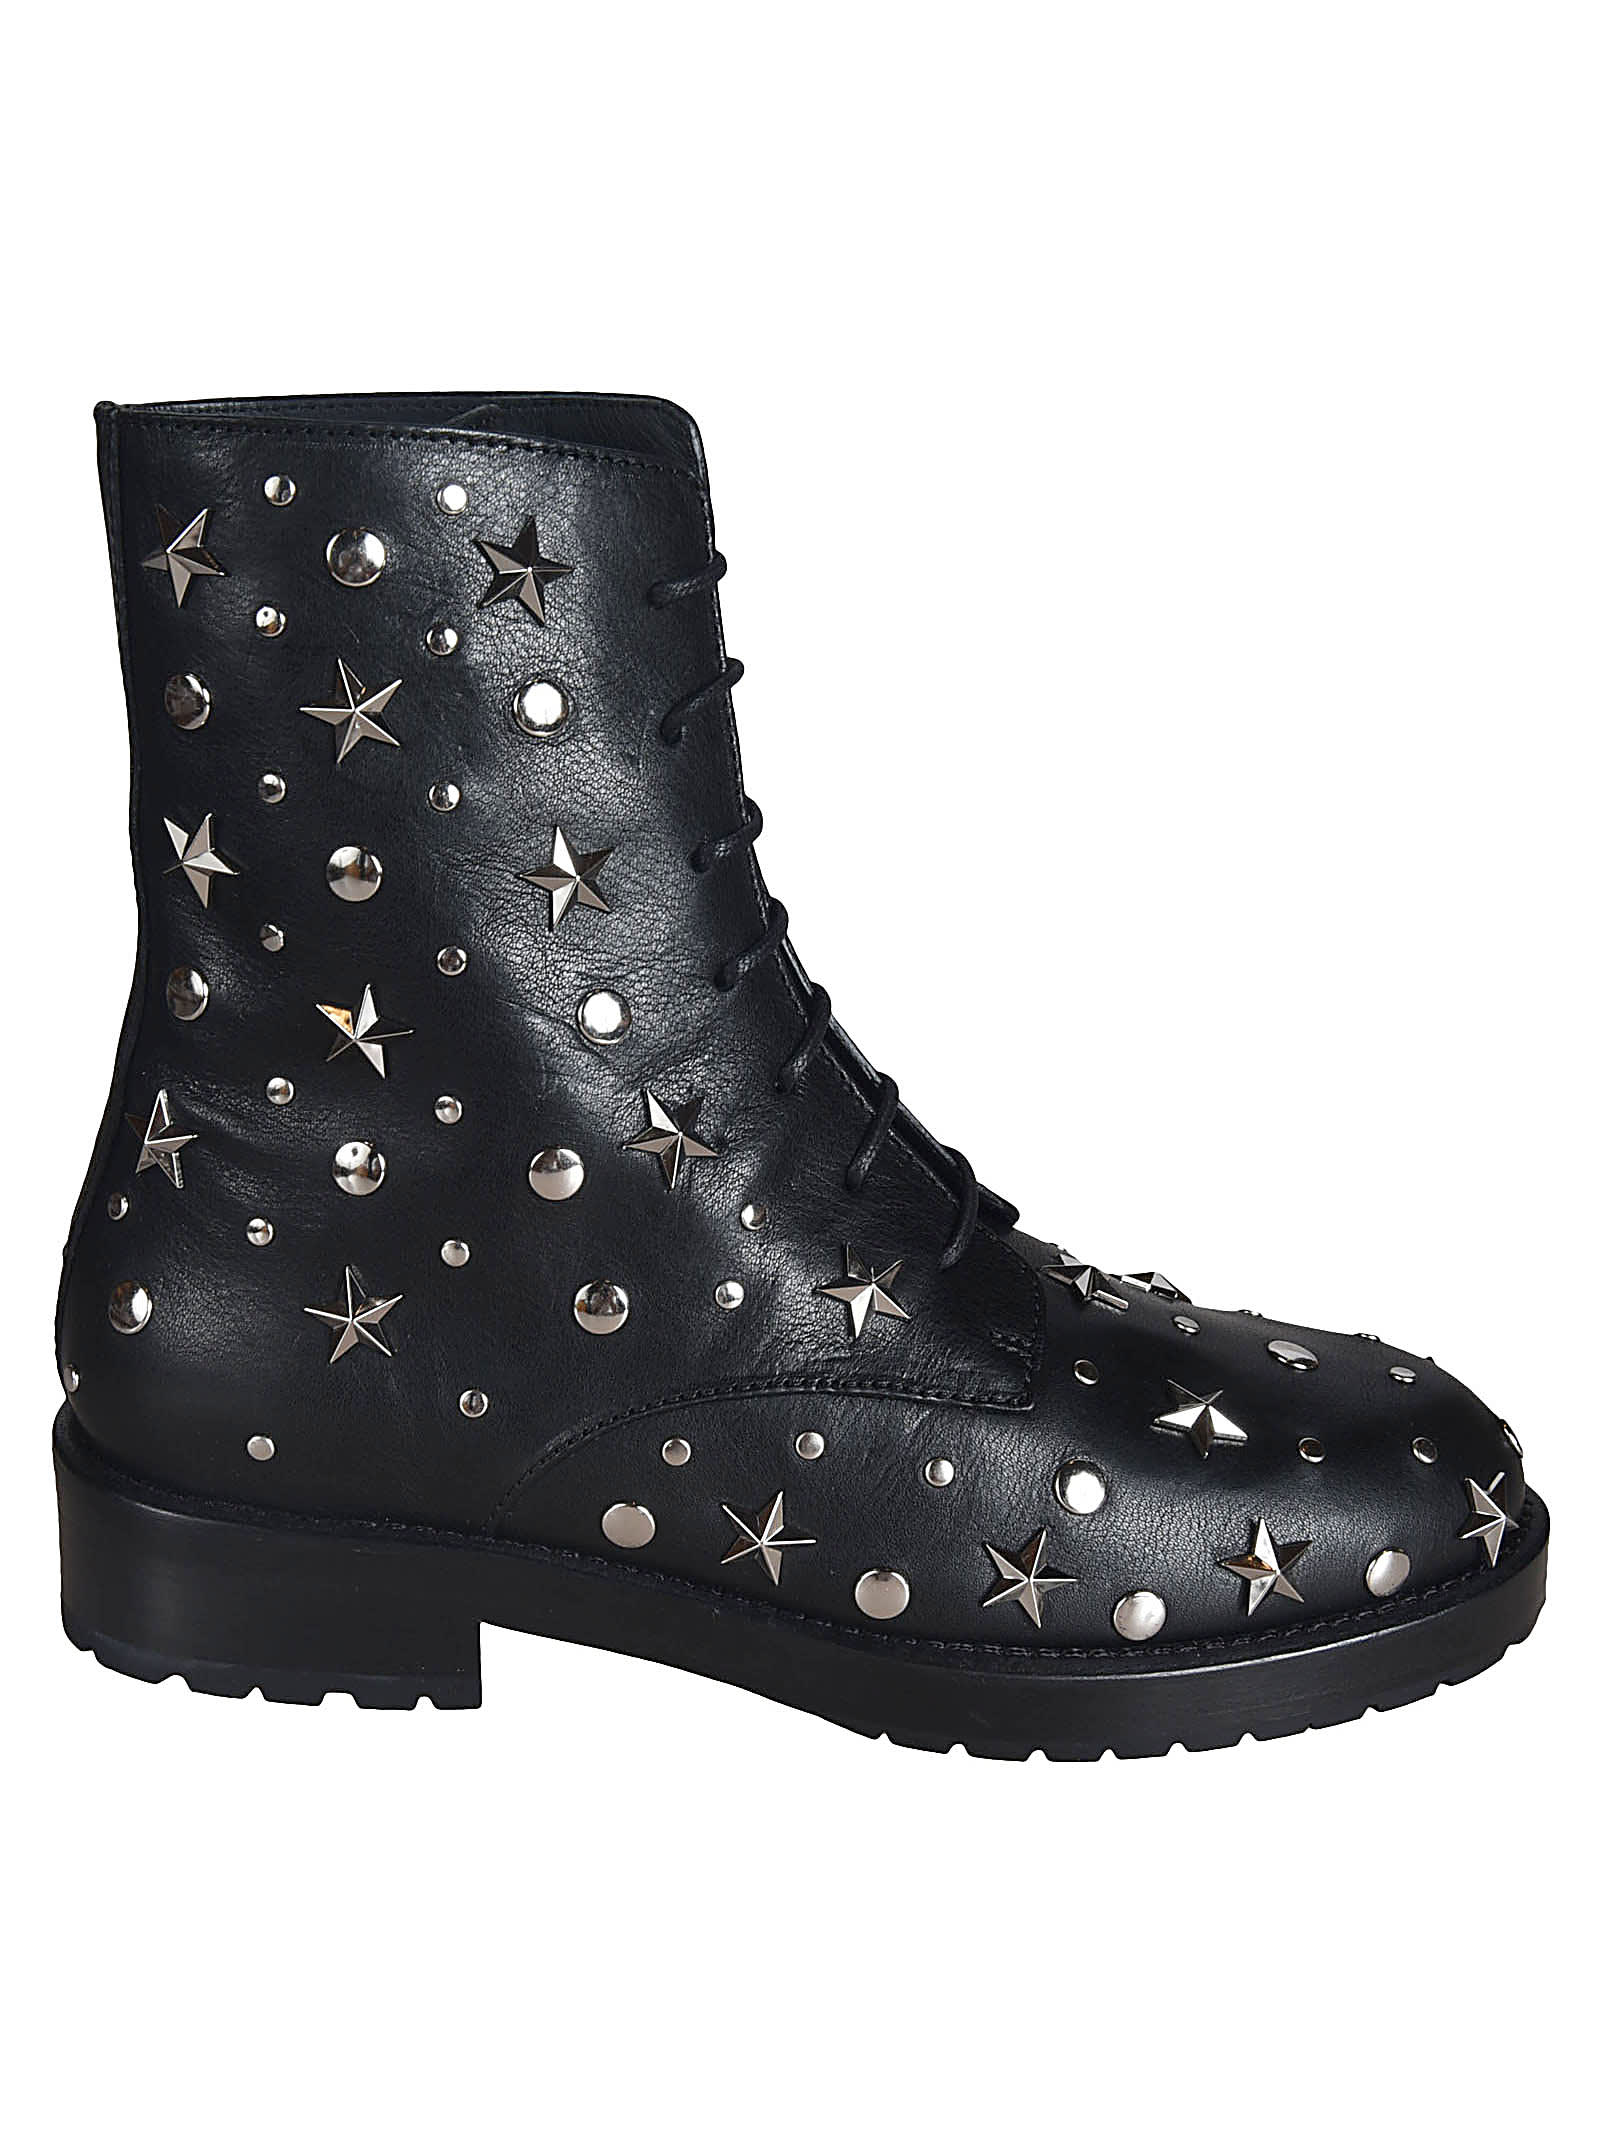 RED Valentino Embellished Combat Boots